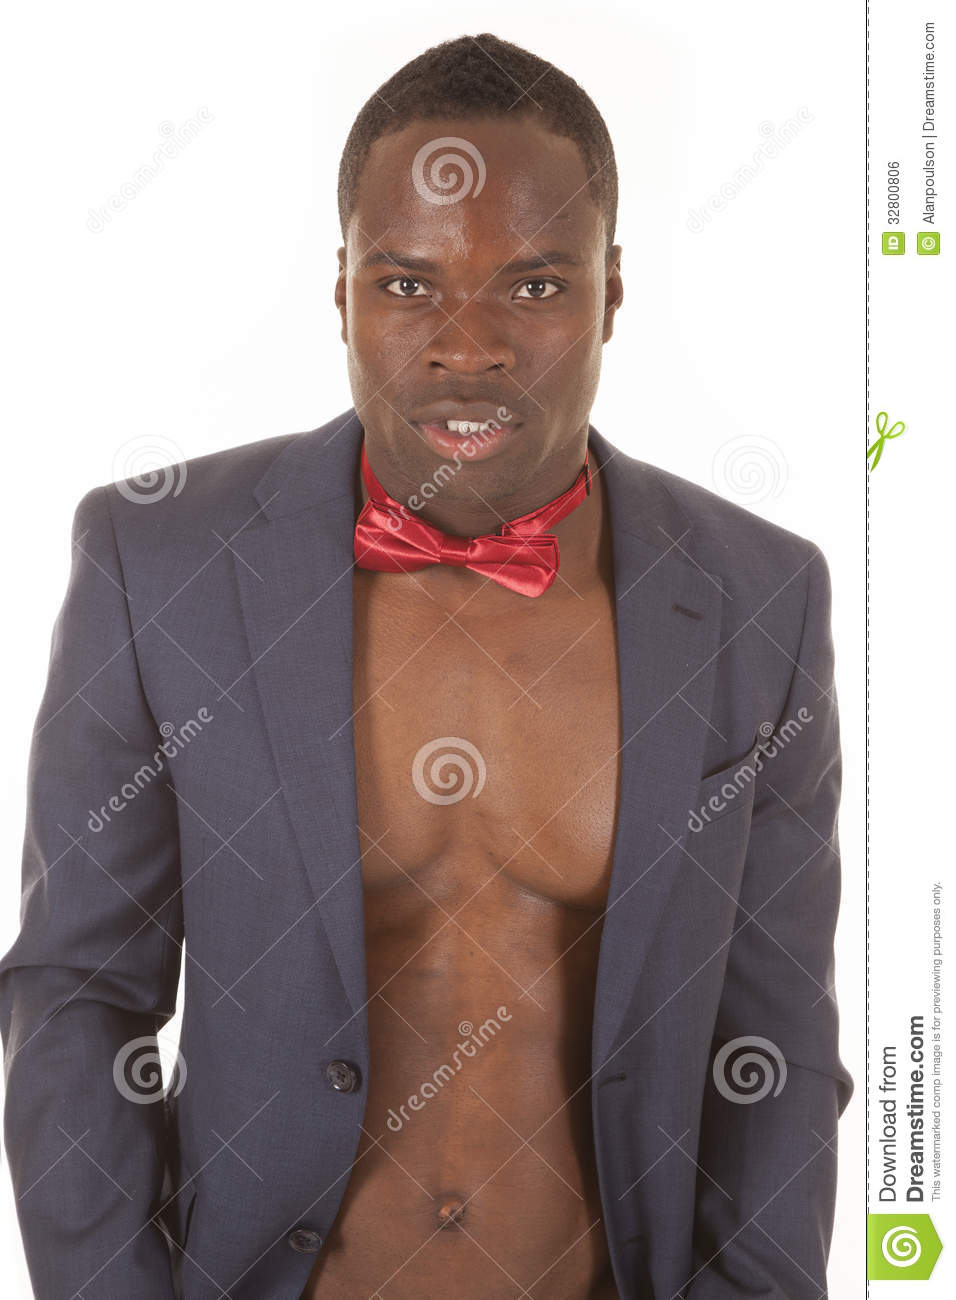 Man No Shirt Bowtie Jacket Serious Royalty Free Stock Image